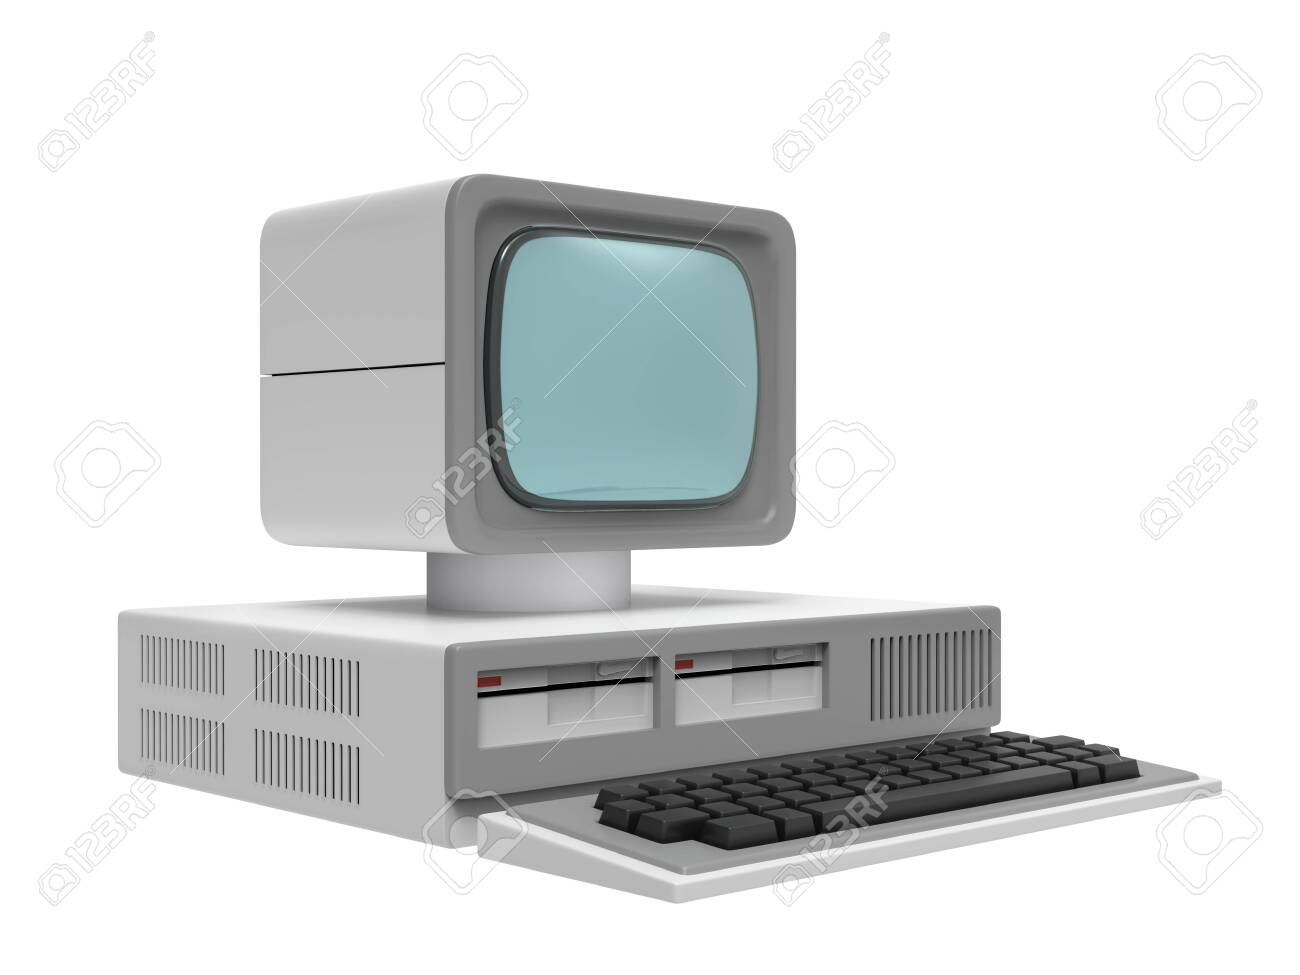 old personal computer - 126764931